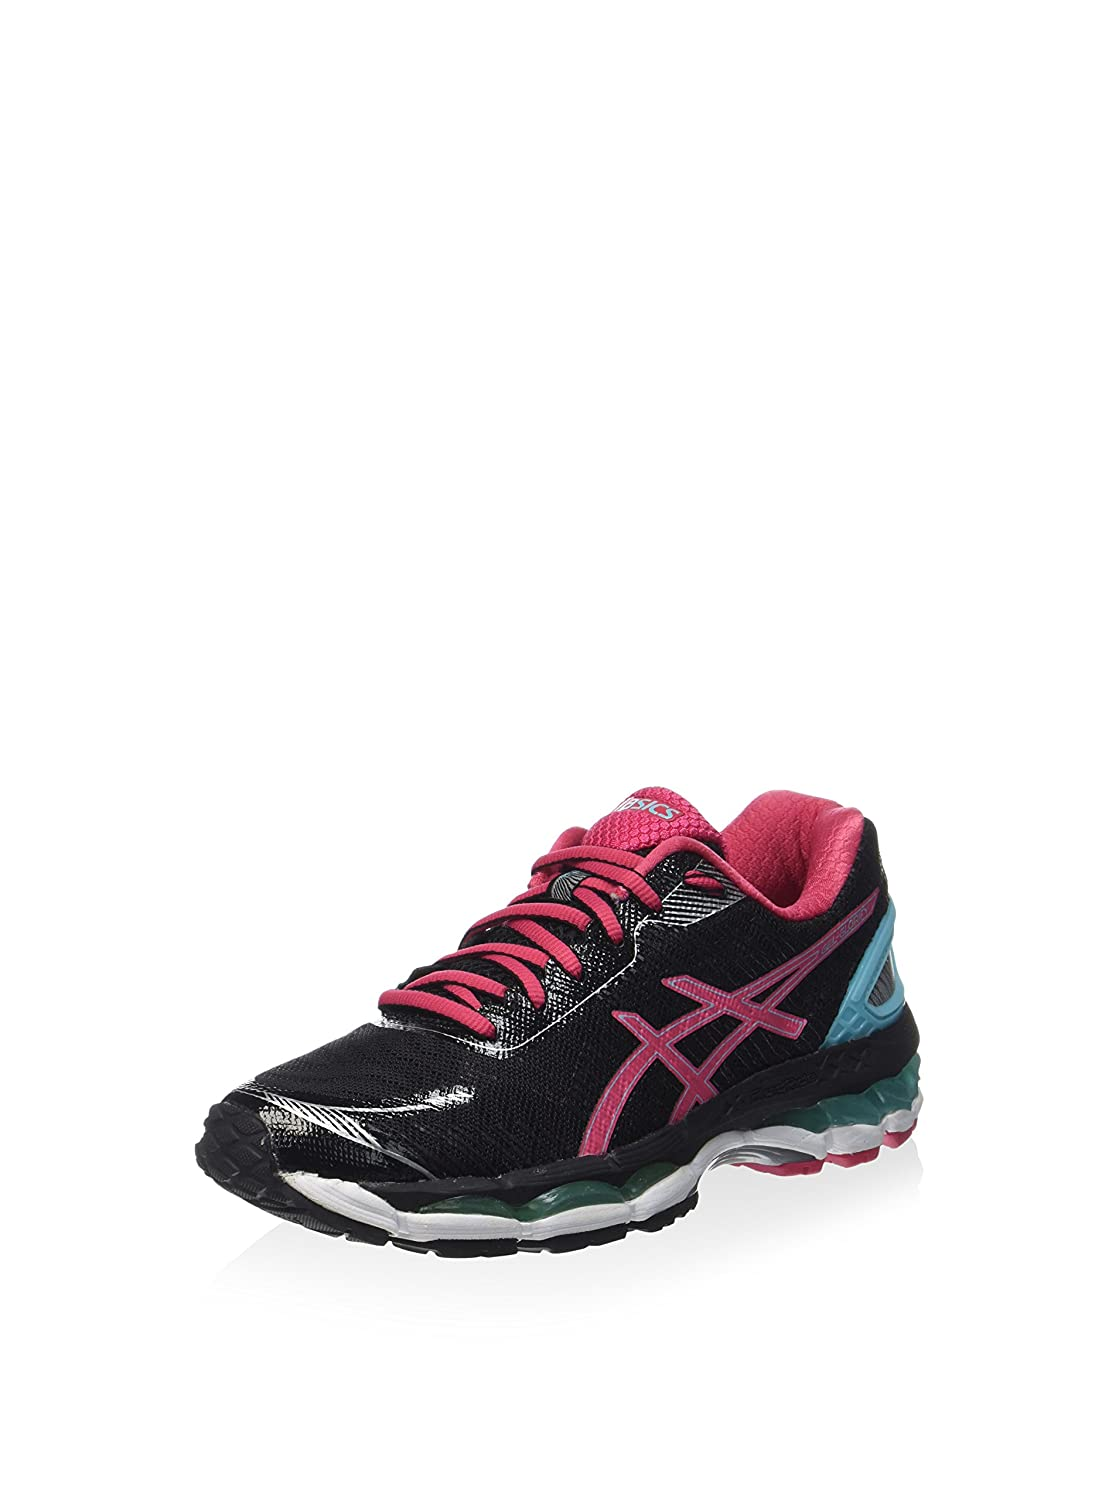 Pulido vértice Mañana  ASICS - Womens Running Glorify 2: Amazon.co.uk: Sports & Outdoors